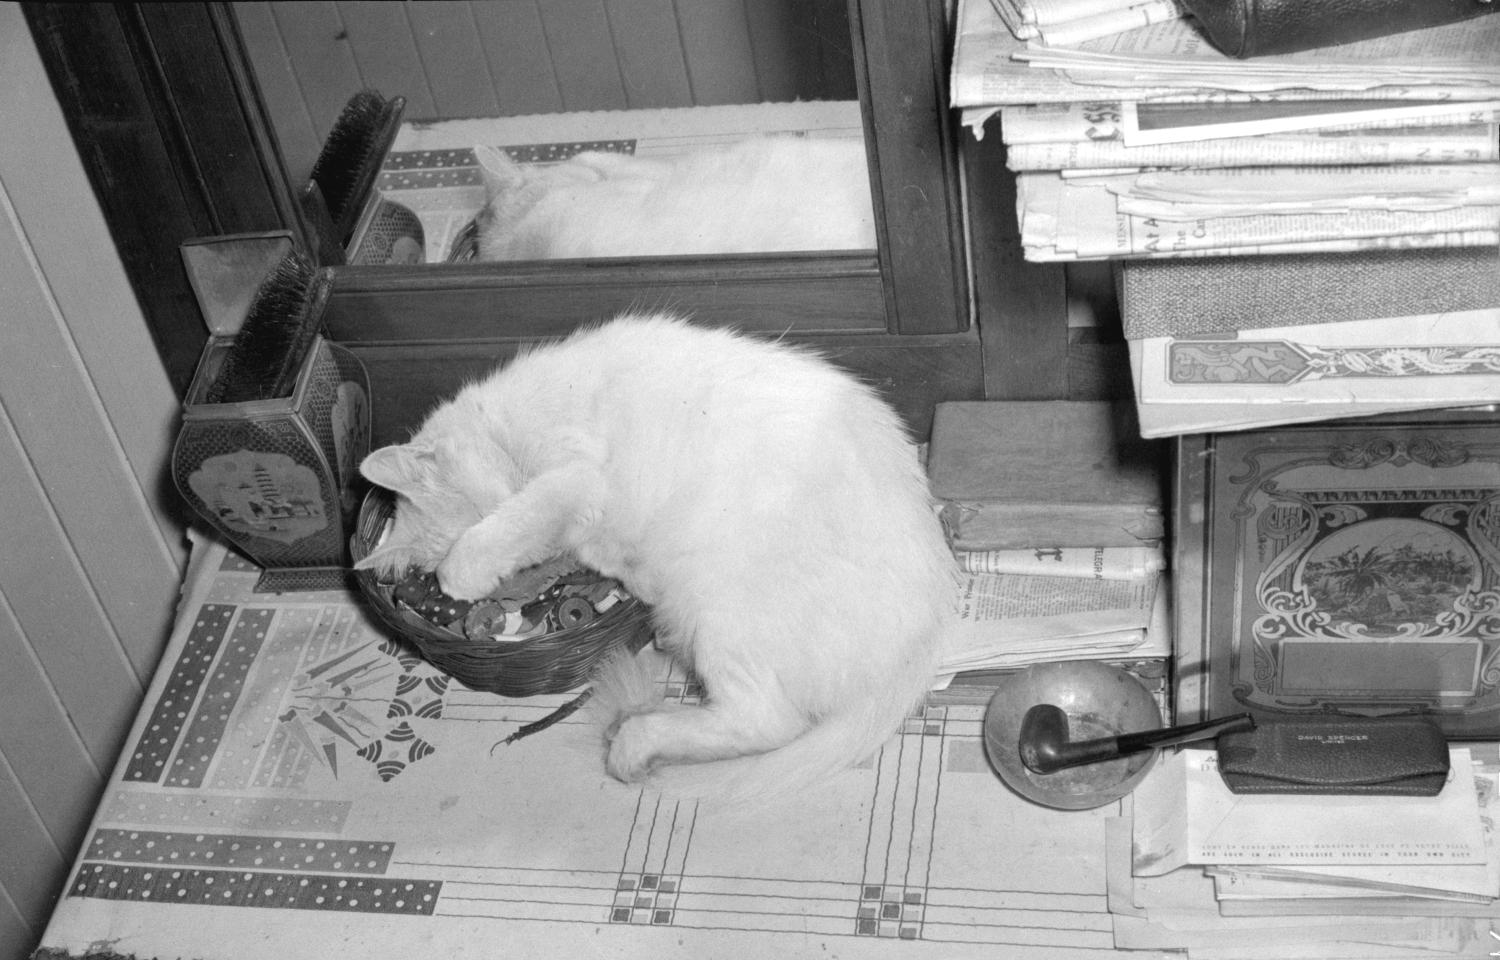 Cat on a desk, ca. 1940 Jack Lindsay, Photographer. Reference code AM1184-S3-: CVA 1184-1084